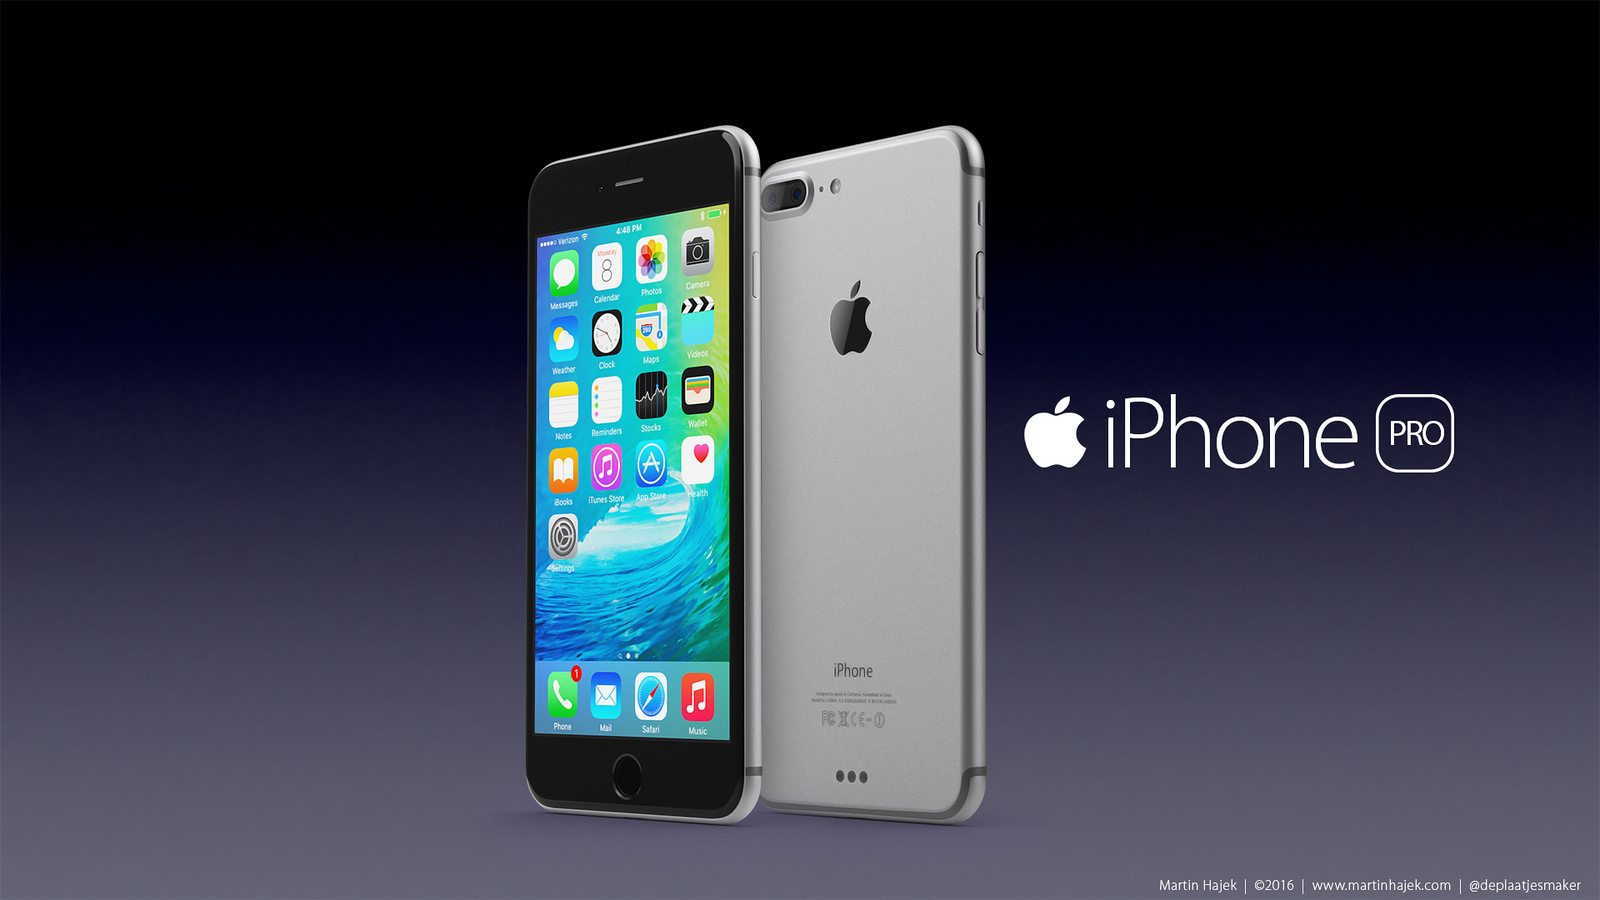 iphone 6 pro iphone 6s pro this year iphone 7 seems. Black Bedroom Furniture Sets. Home Design Ideas